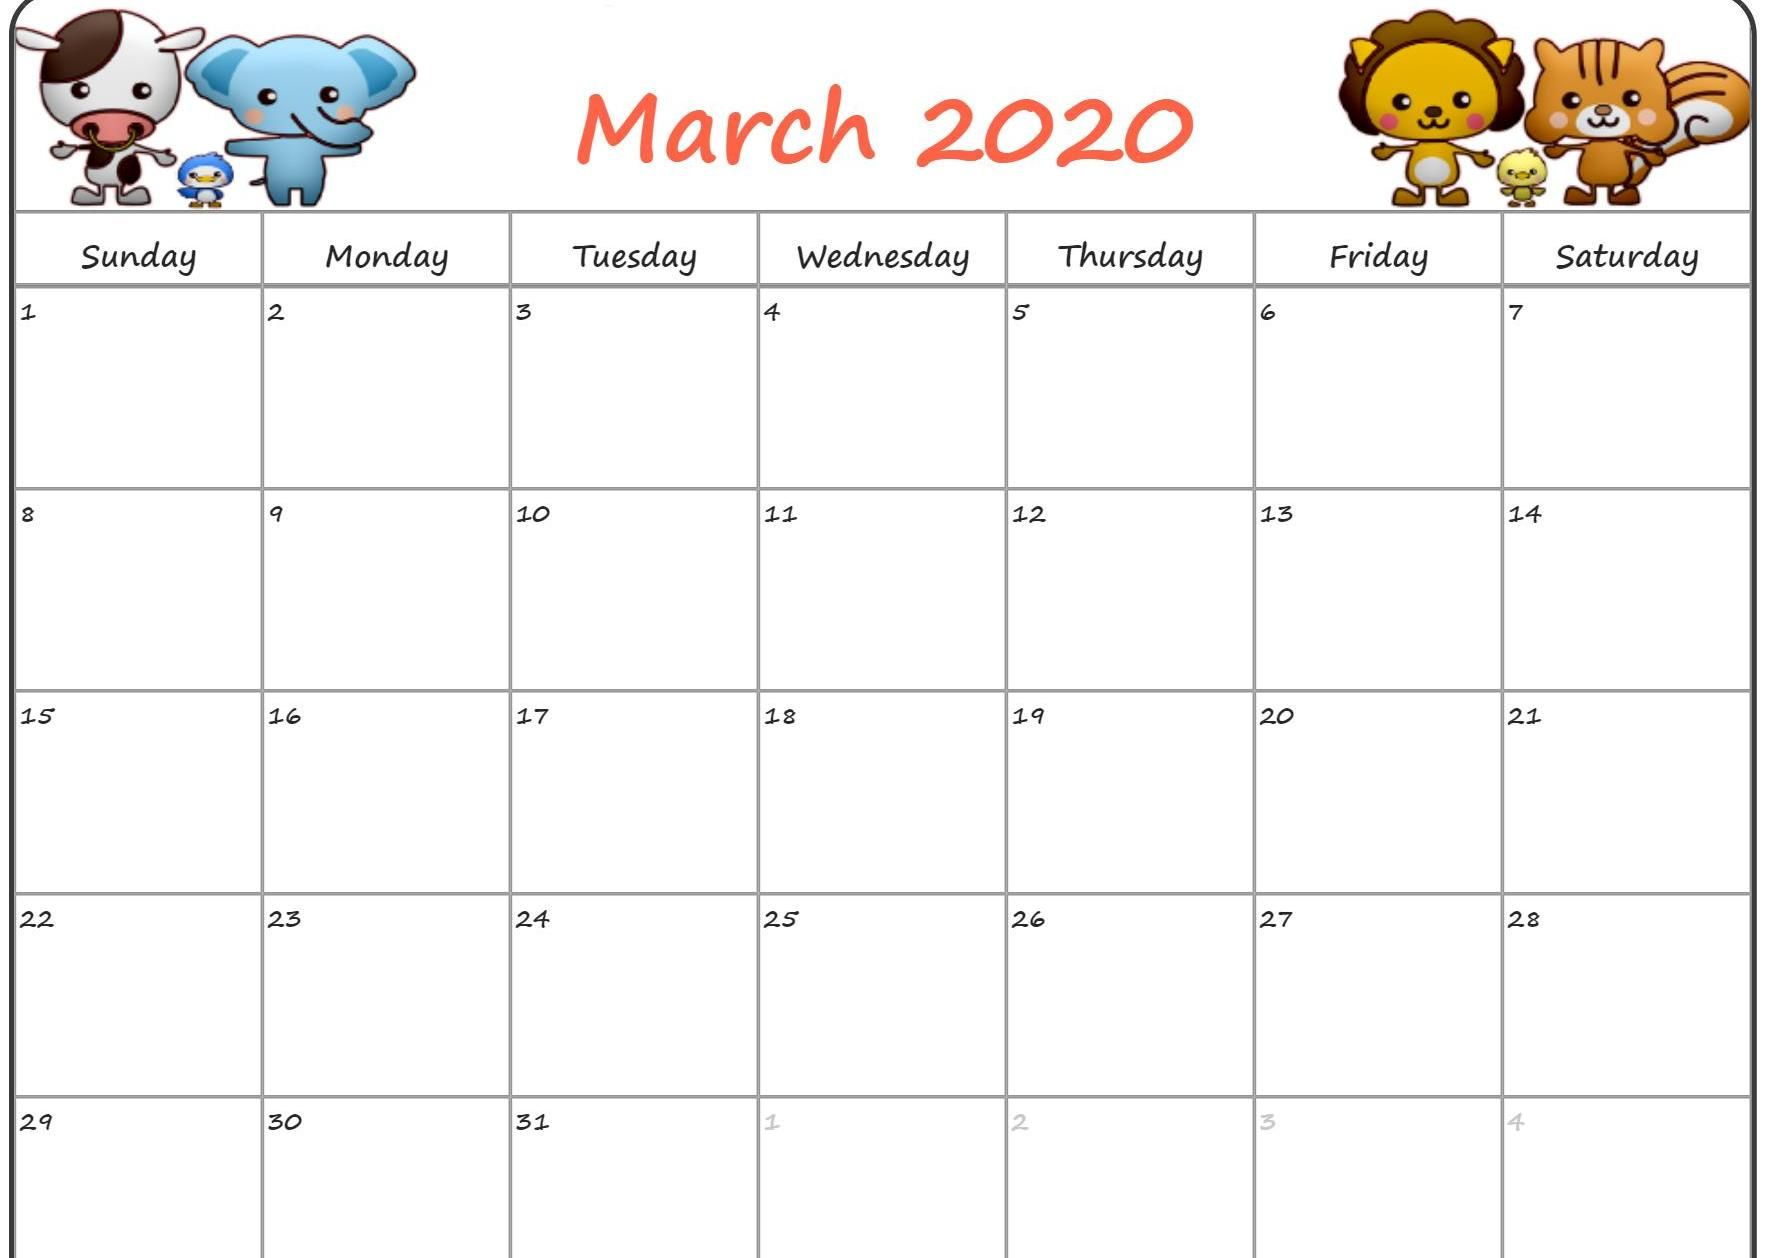 March 2020 Floral Wallpaper